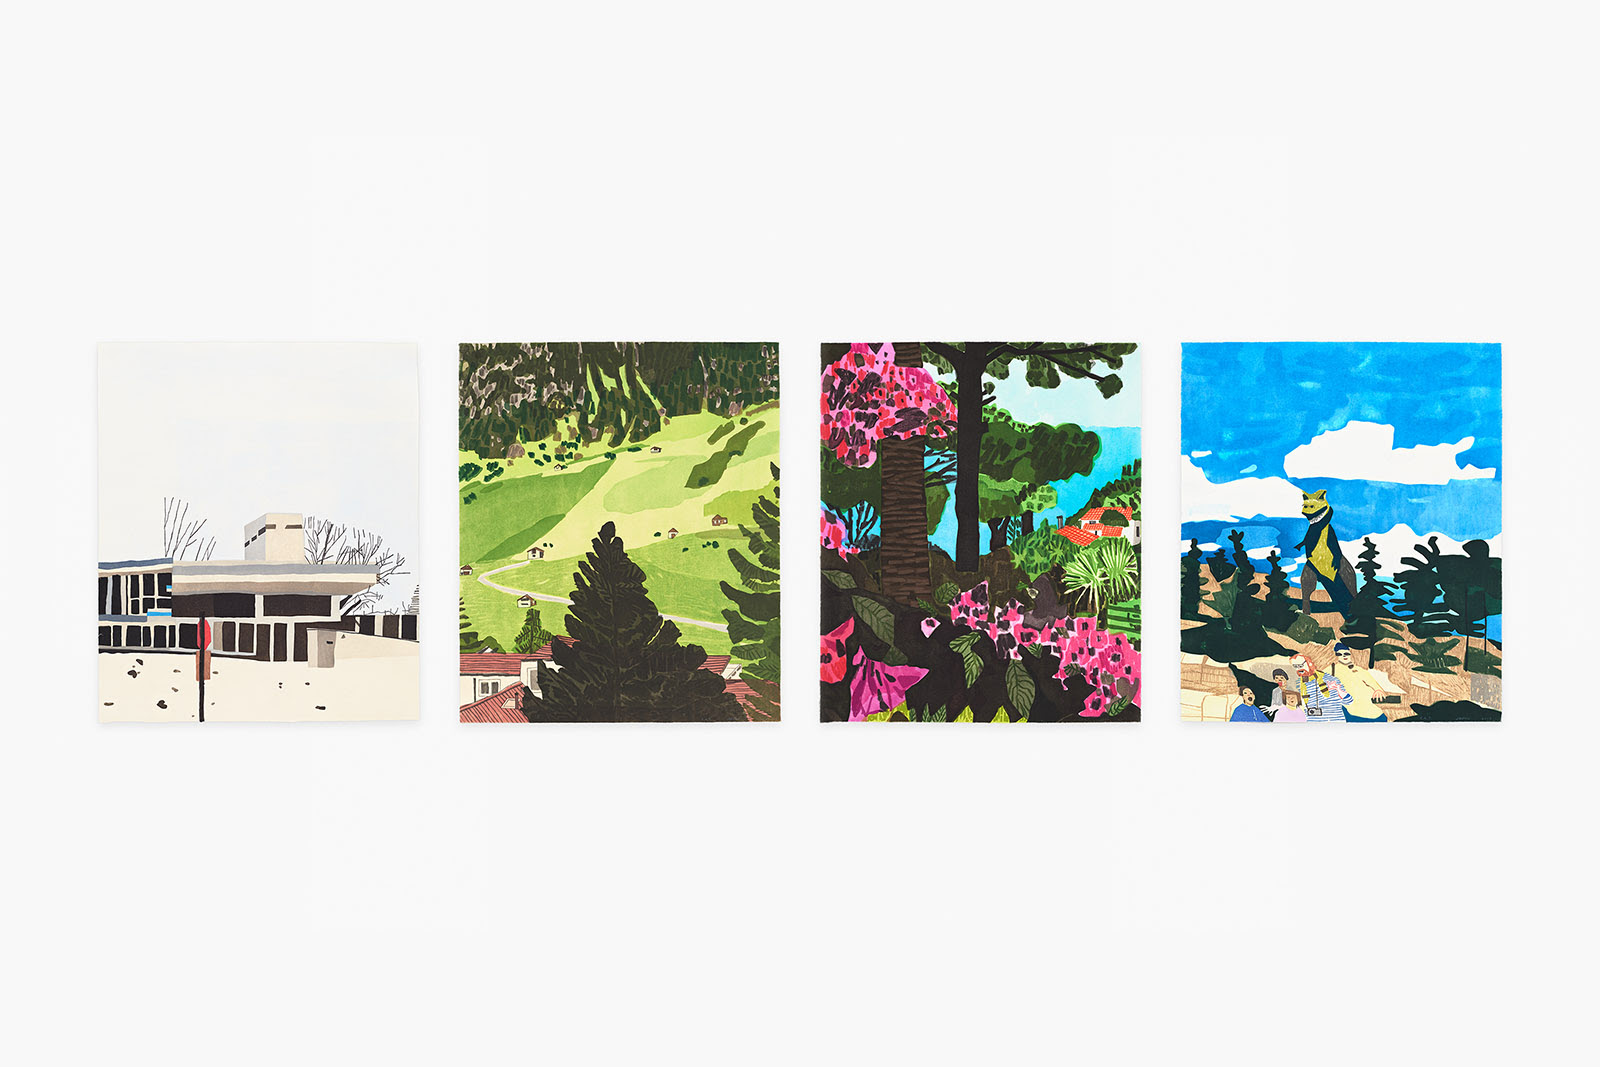 fine art print by jonas wood titled four landscapes which depicts four canvases each showing either mountain, forestry, a bear, or a house